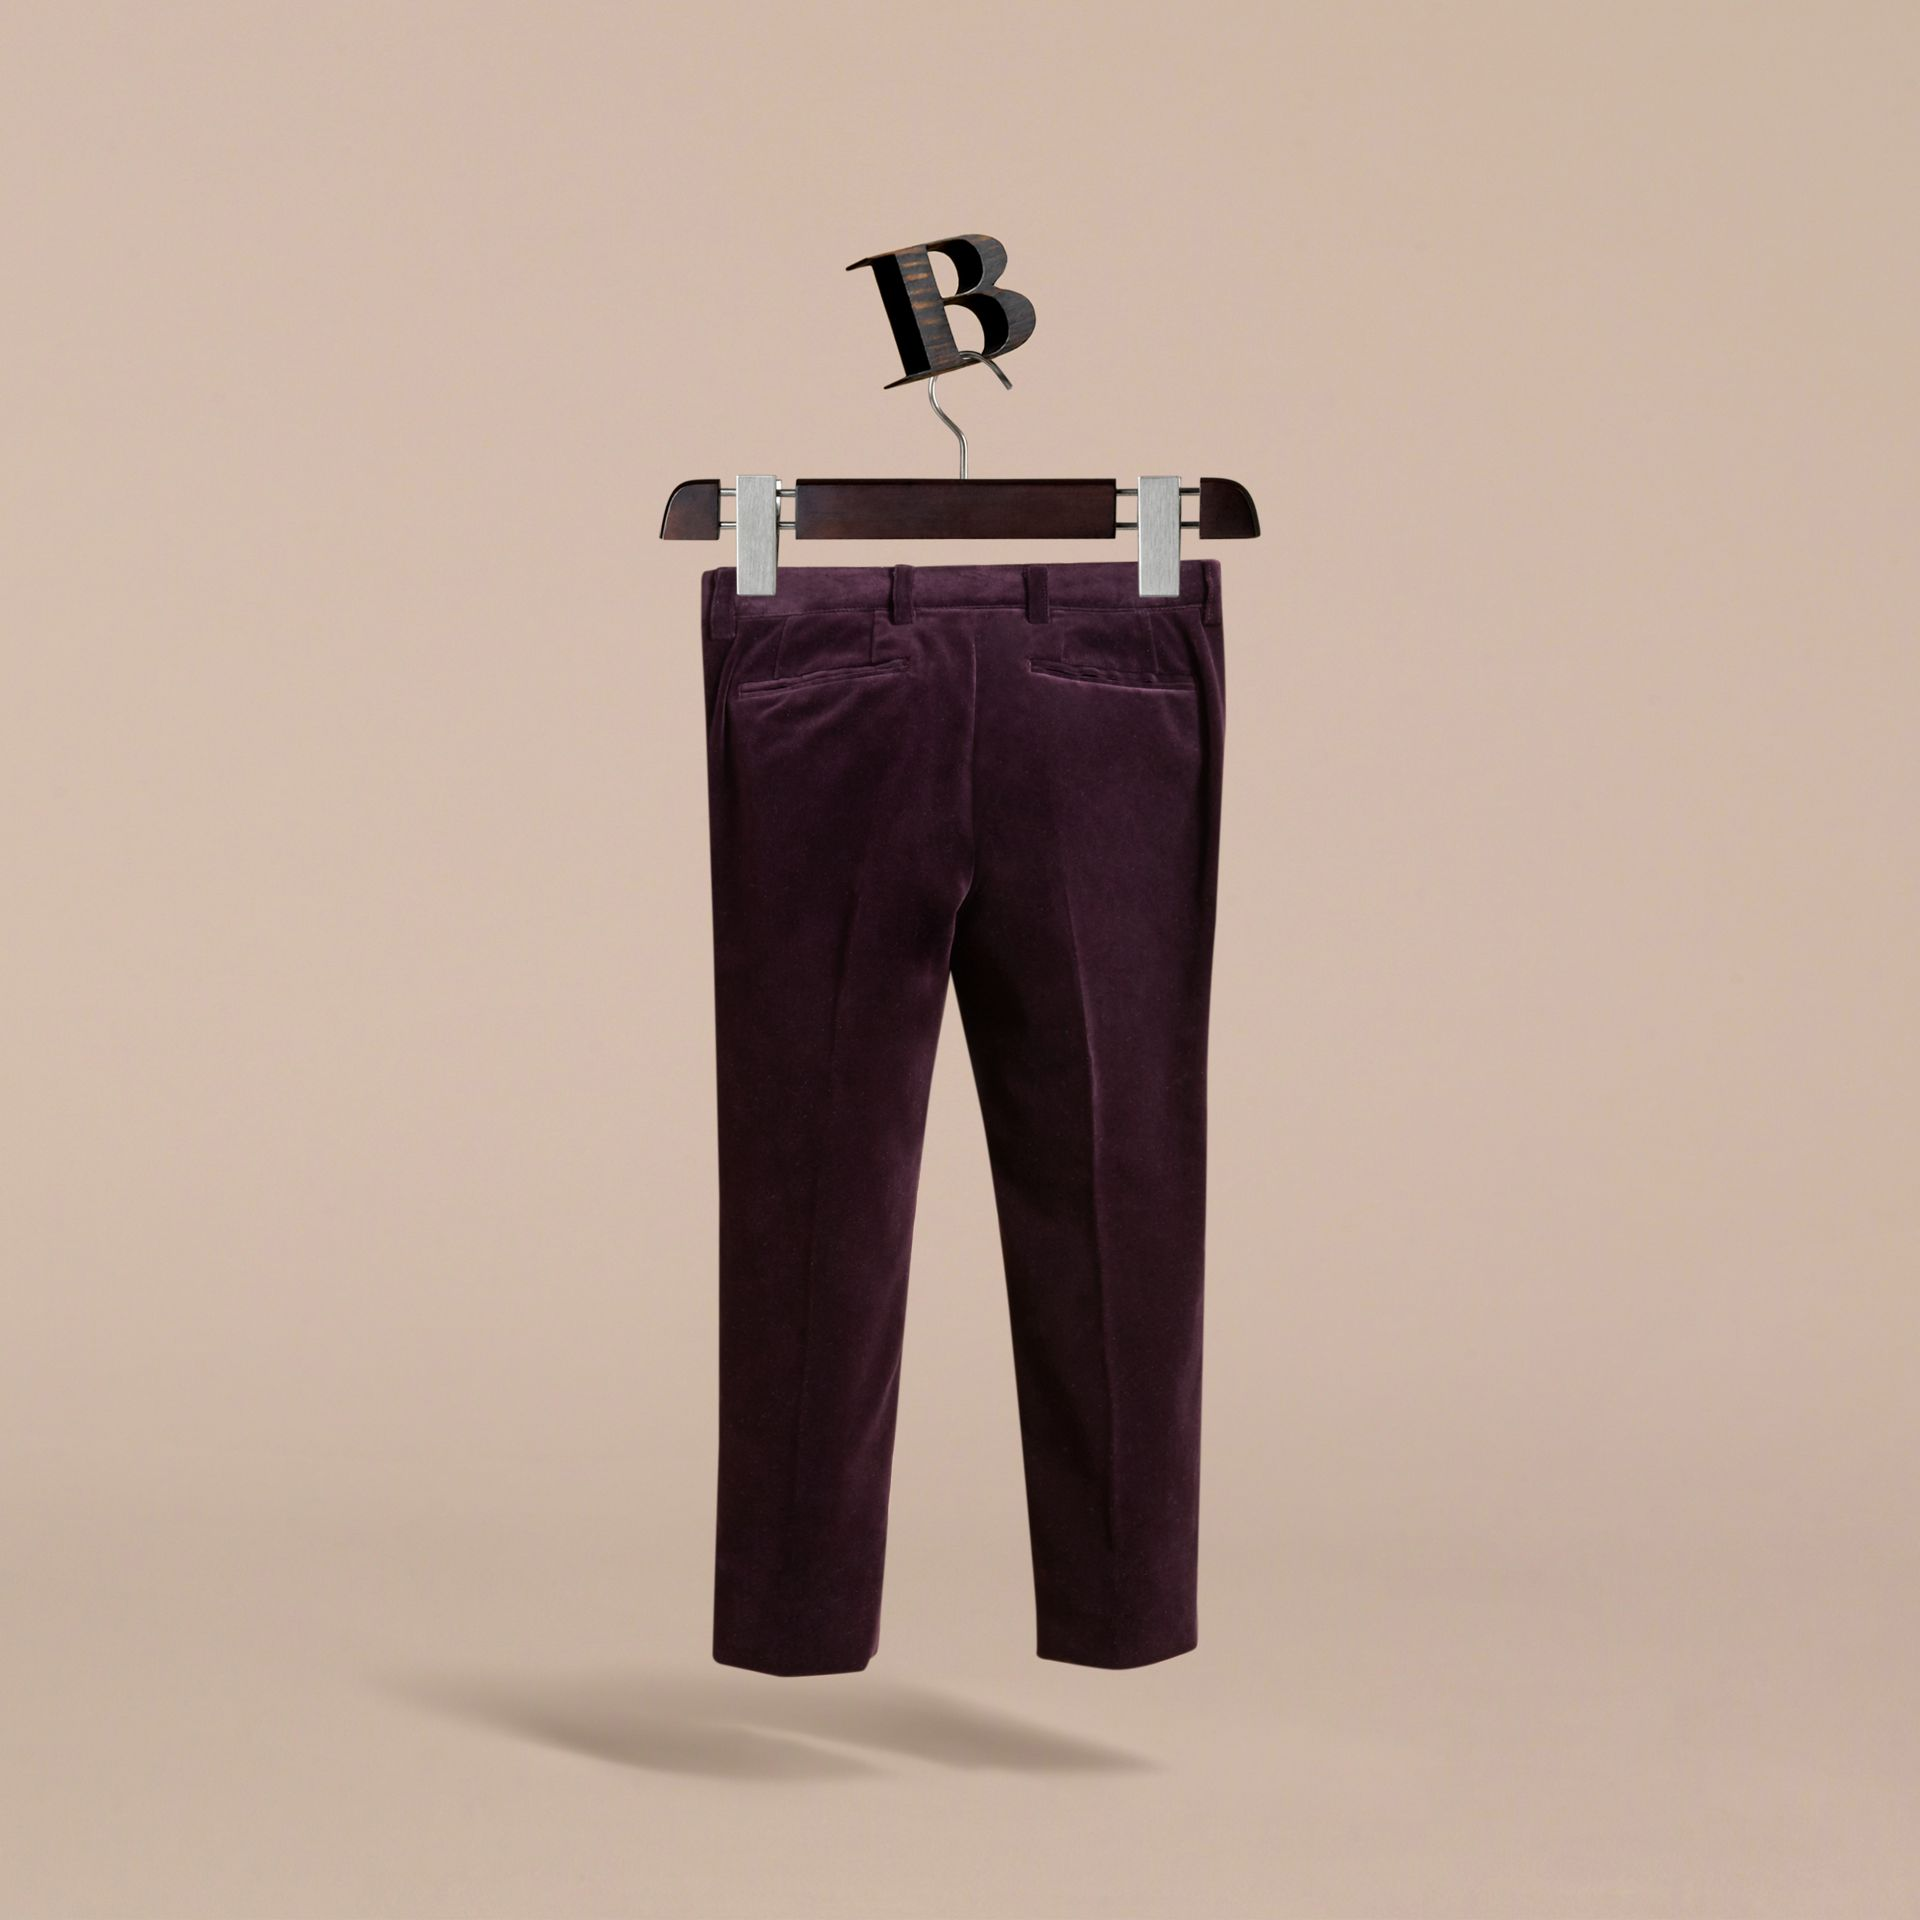 Tailored Velvet Tuxedo Trousers in Black Currant - Boy | Burberry - gallery image 3